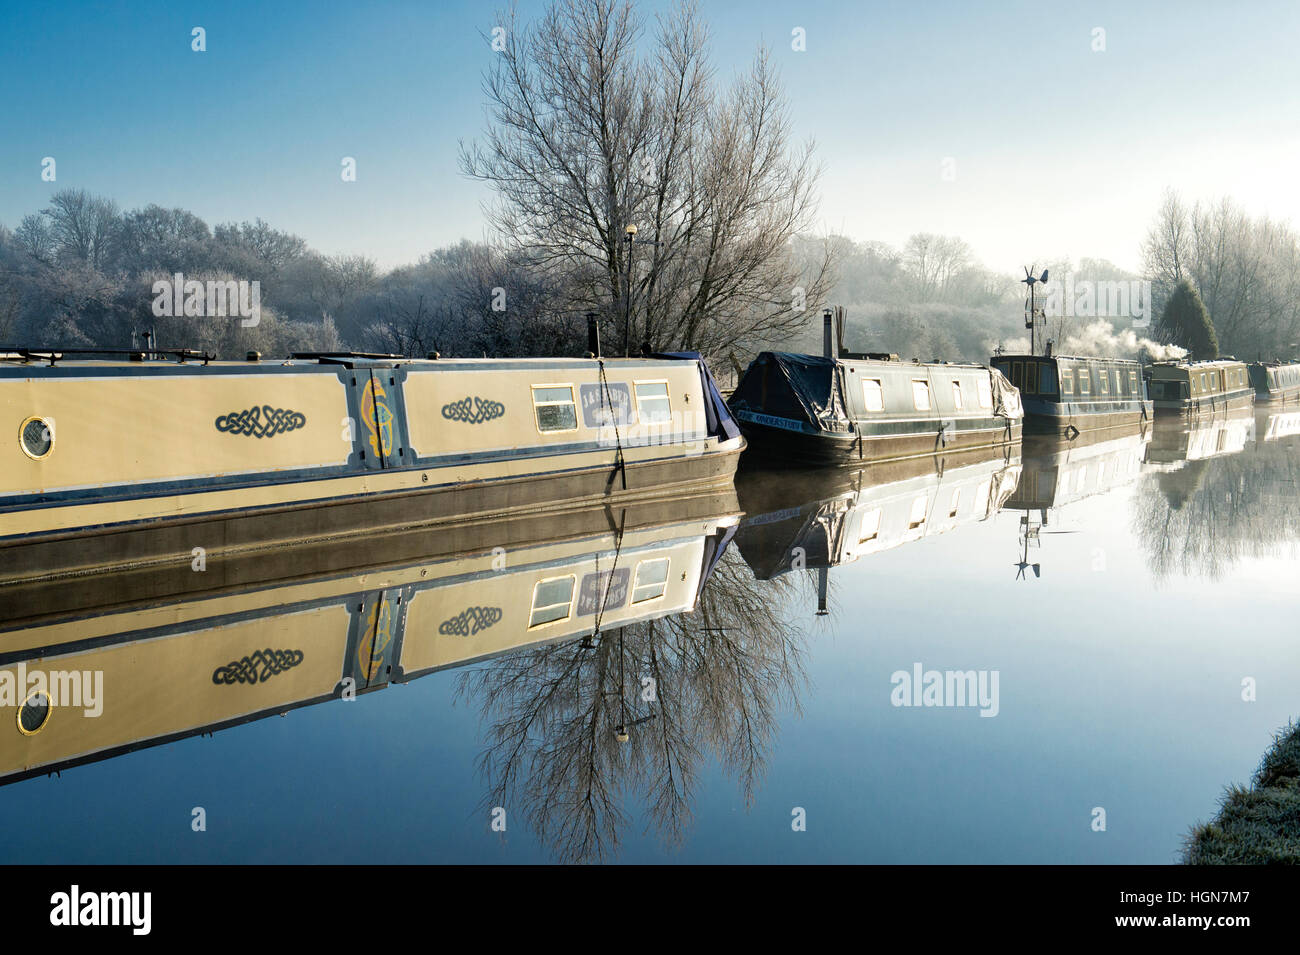 Canal boats on the oxford canal on a frosty December morning. Aynho, Banbury, Oxfordshire, England - Stock Image